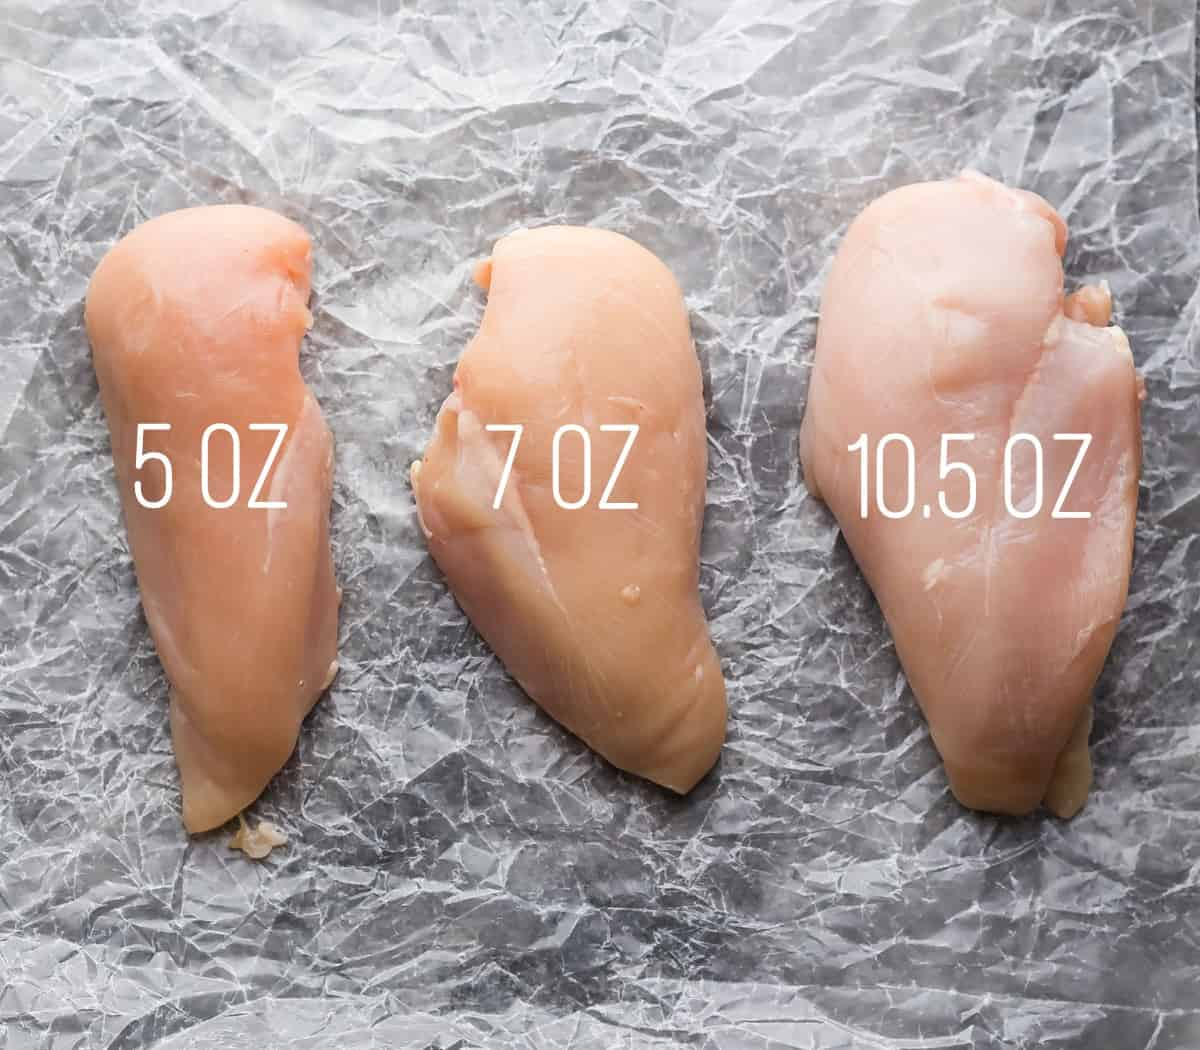 3 chicken breasts of differing sizes